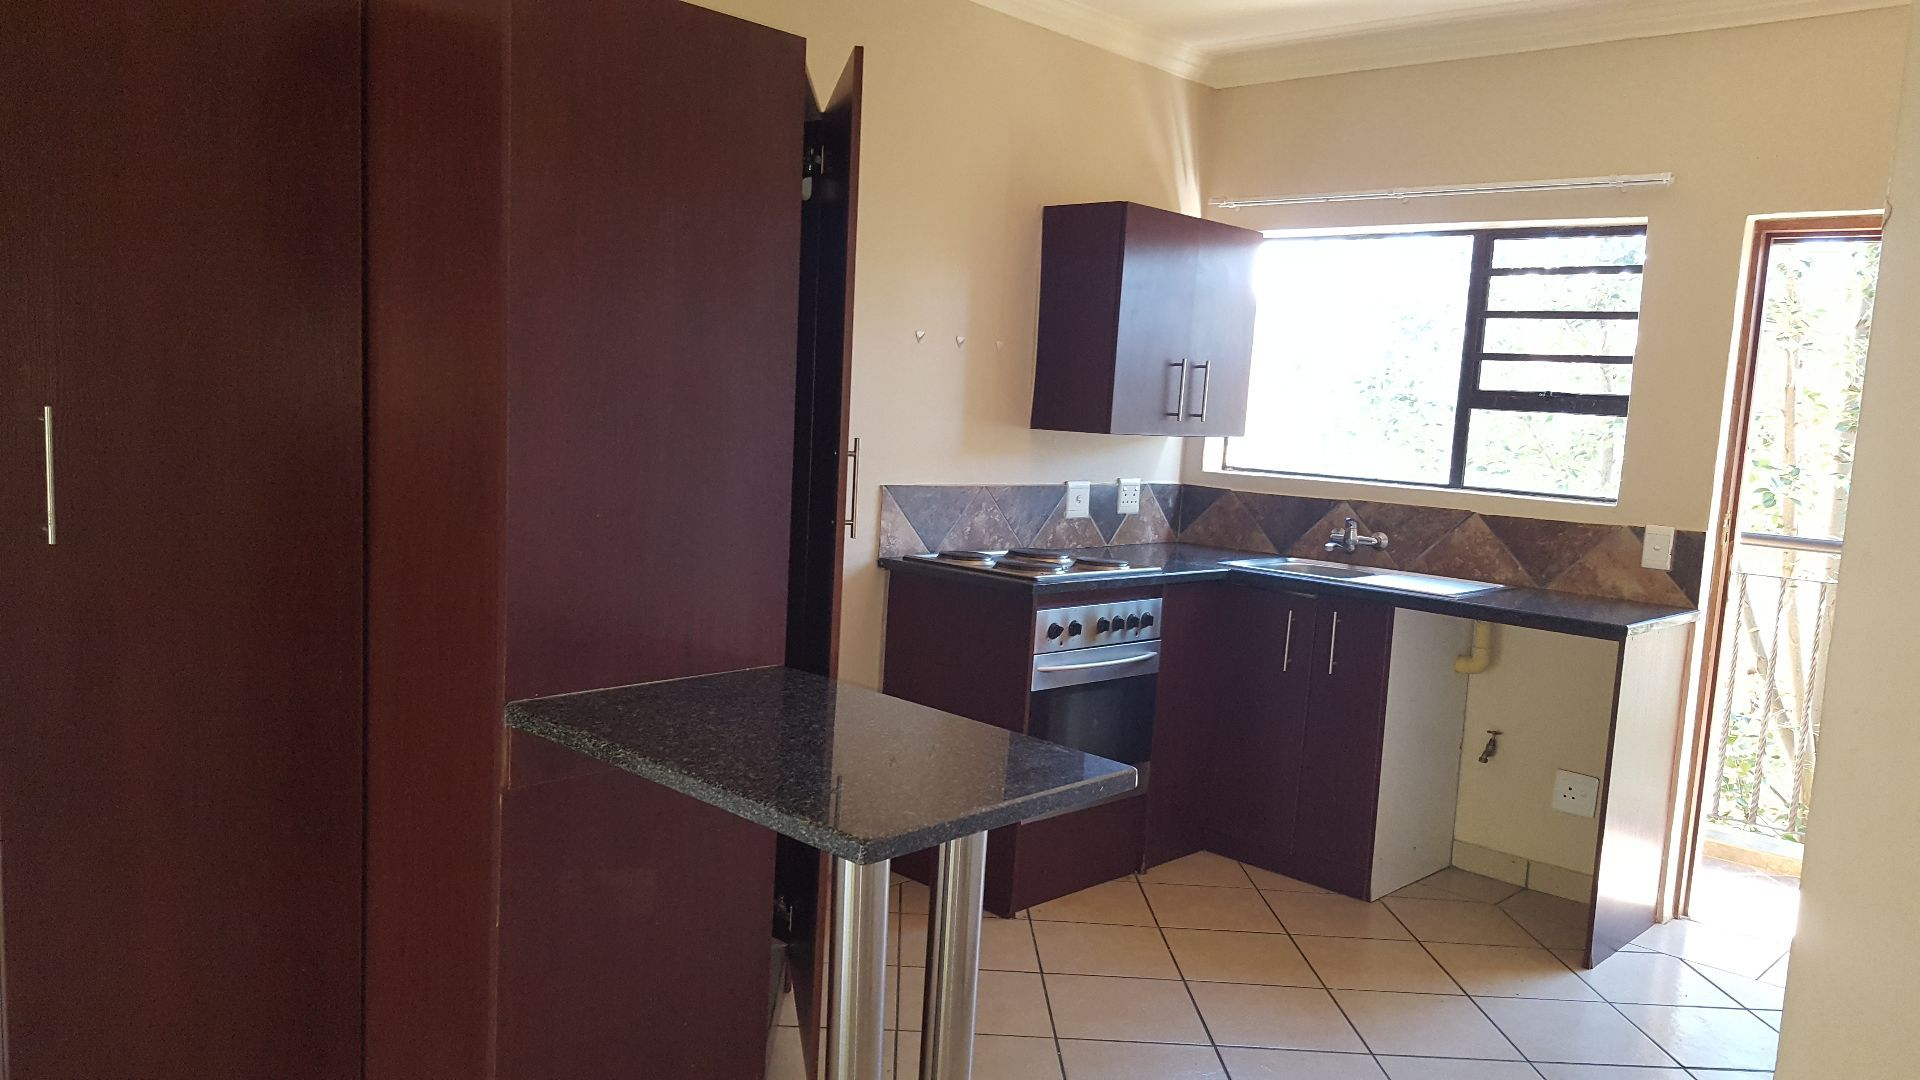 Potchefstroom Central property for sale. Ref No: 13514573. Picture no 14